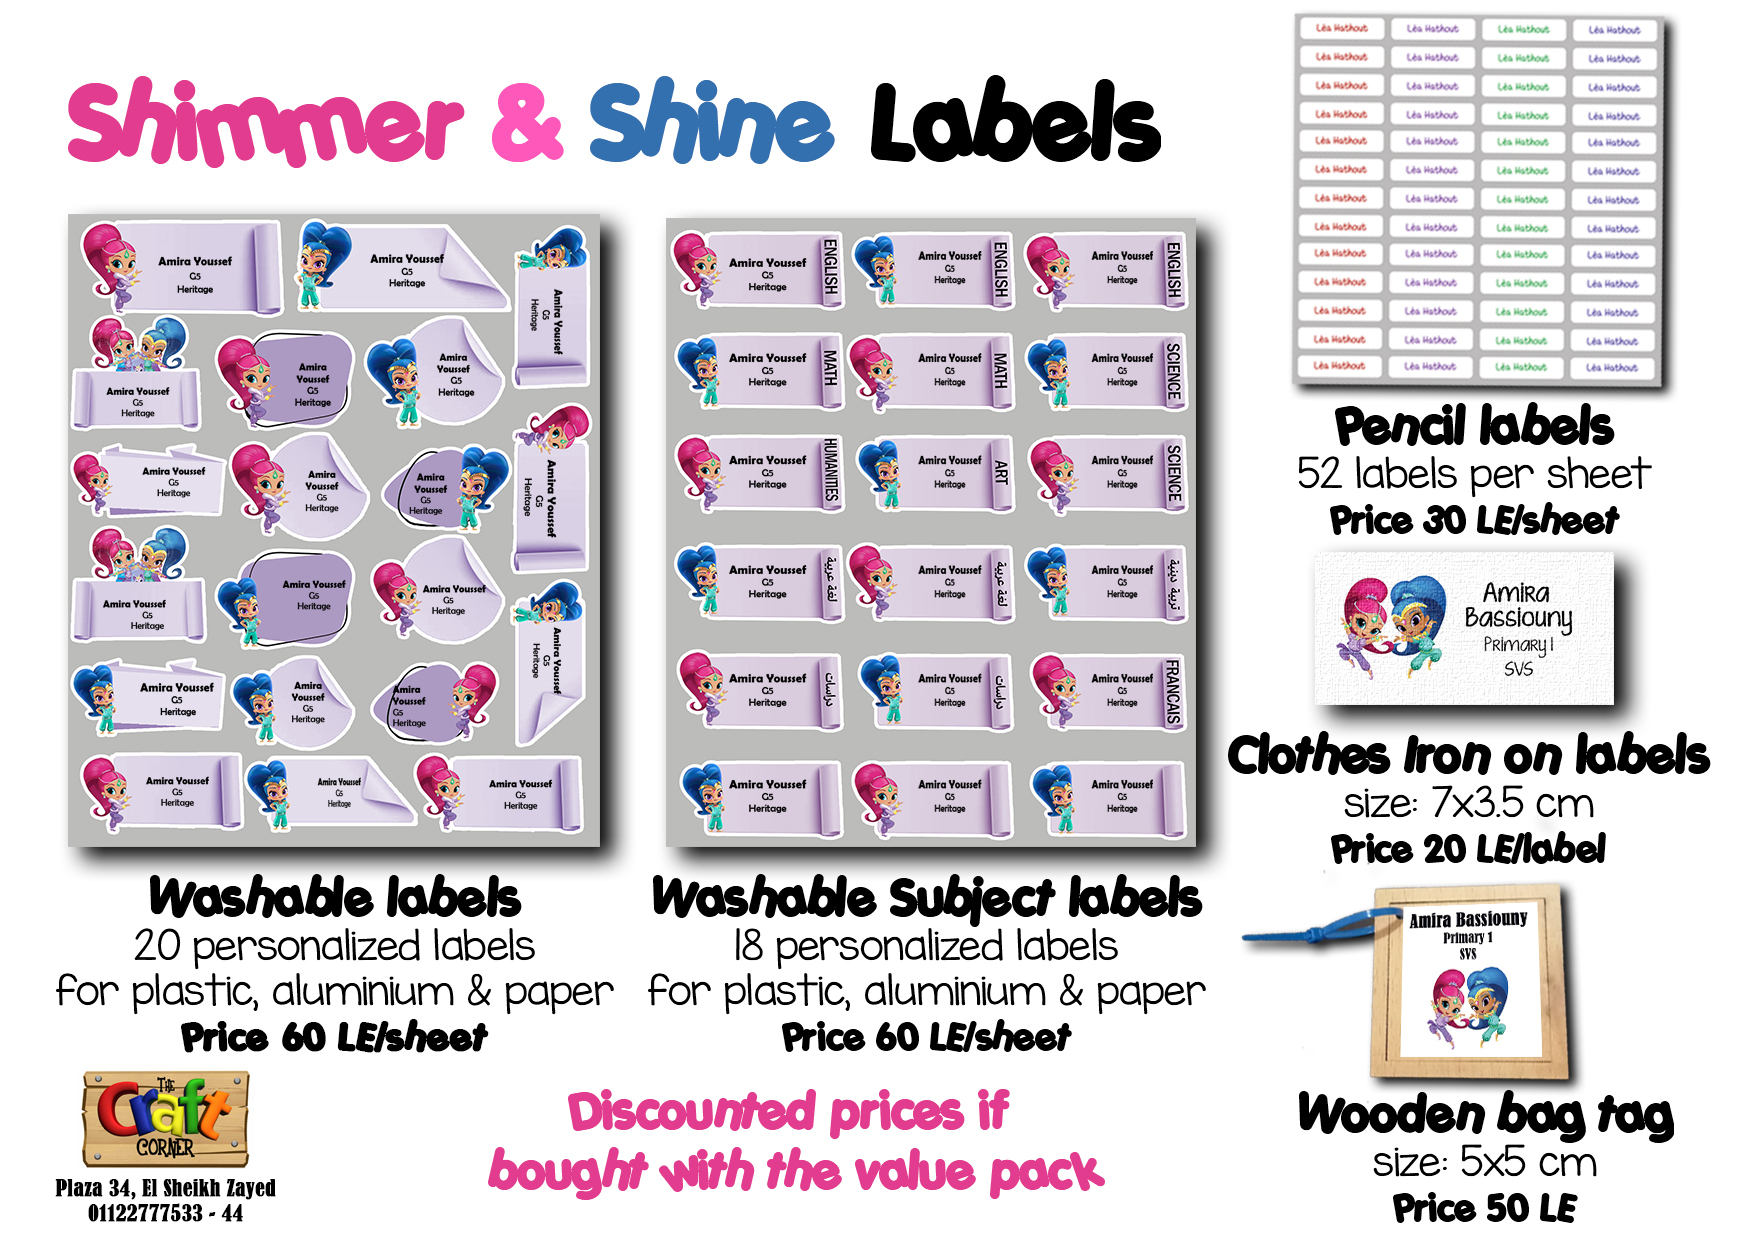 shimmer & shine Labels